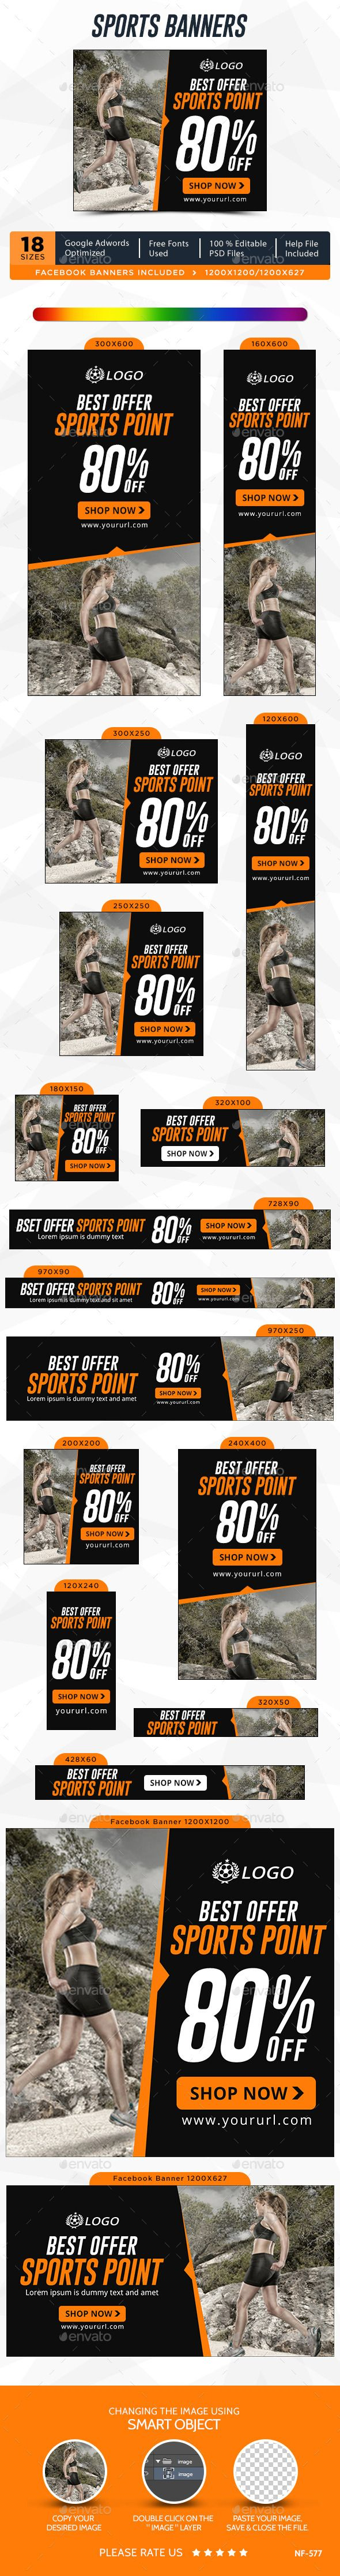 Sports Banners Template #design #ads #web Download: http://graphicriver.net/item/sports-banners/12482789?ref=ksioks